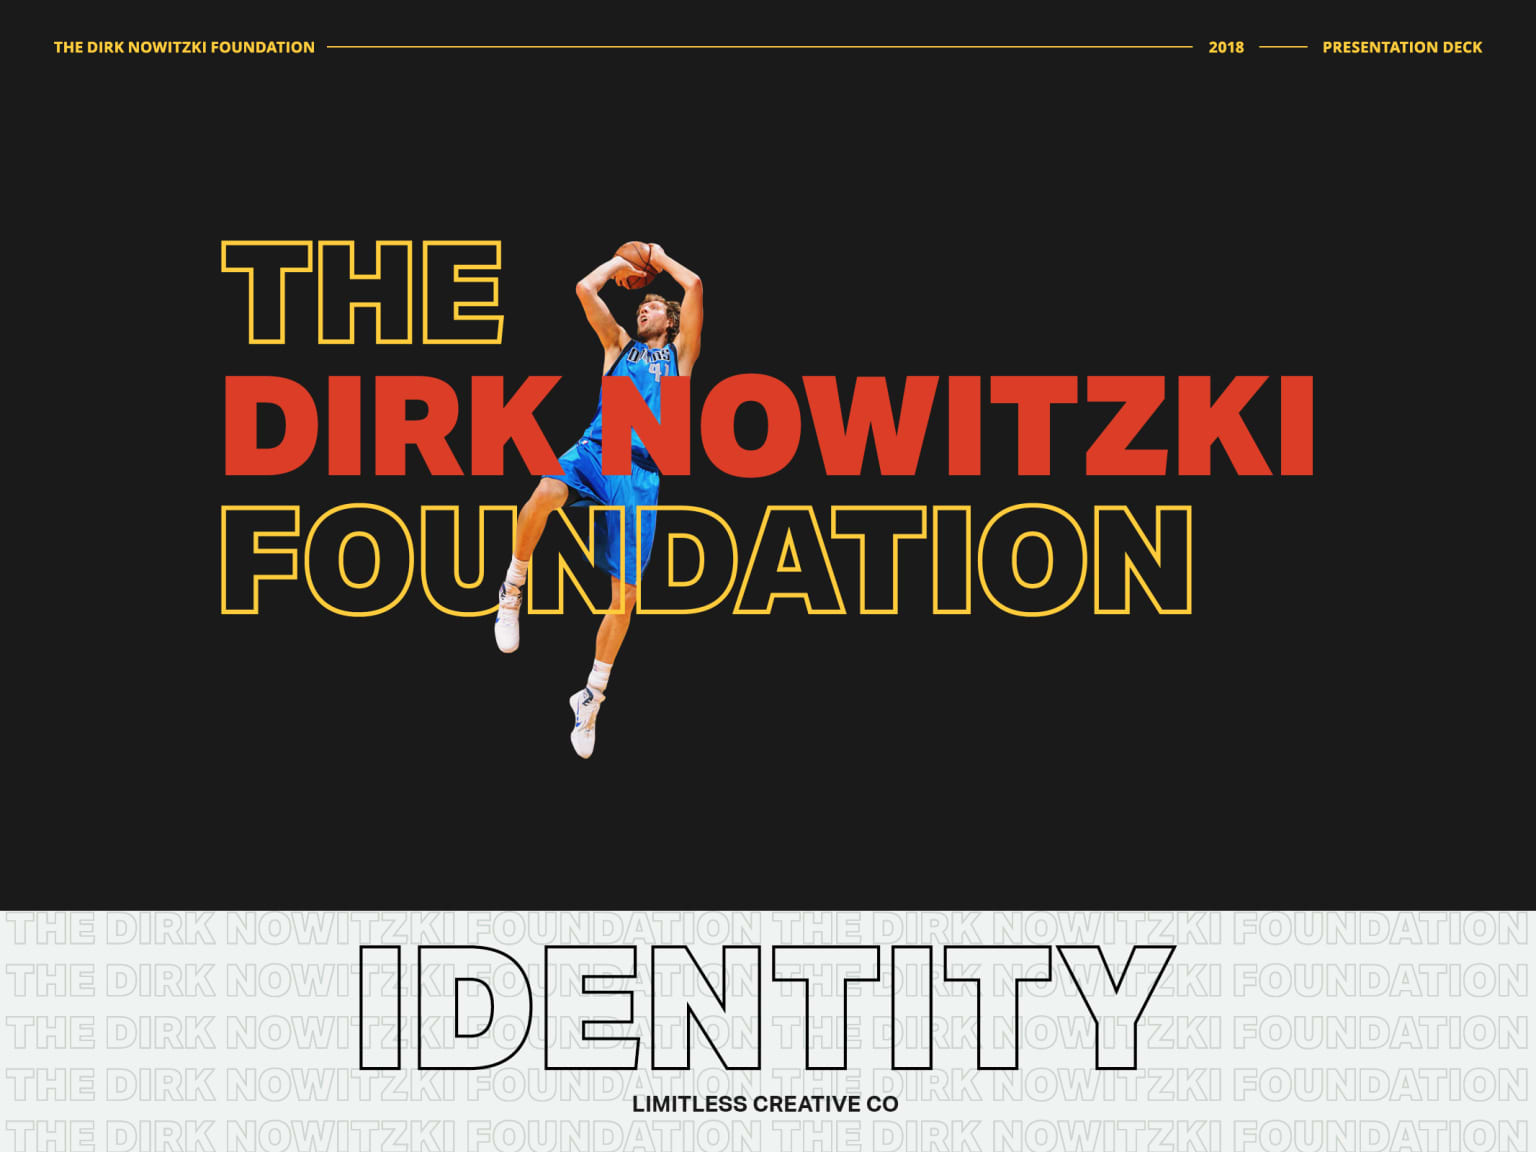 Dirk Nowitzki Foundation [Brand Proposal]